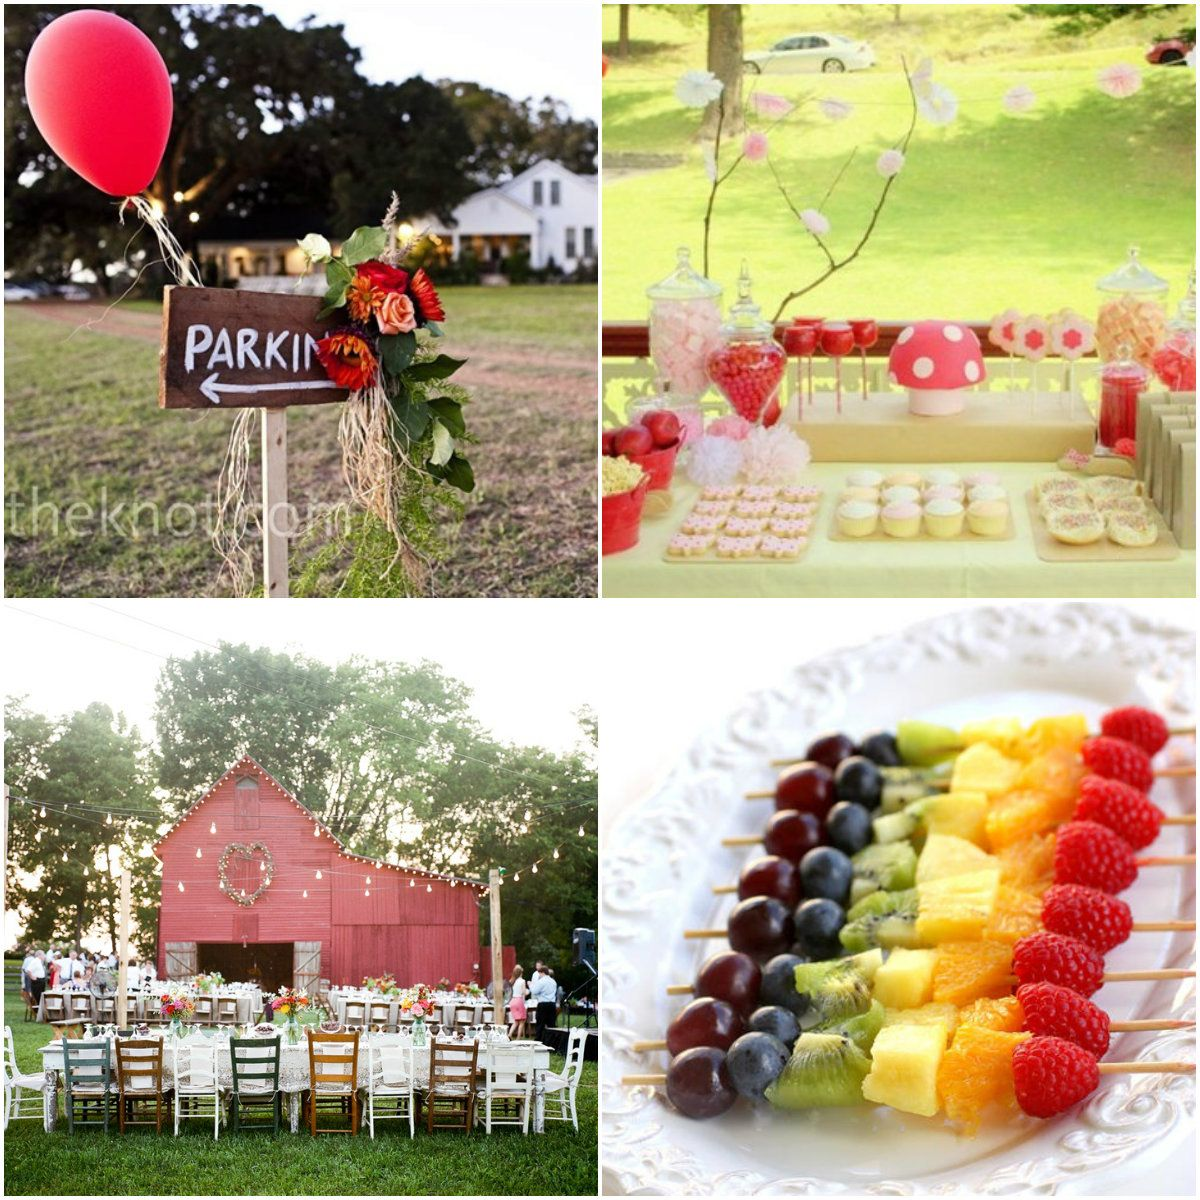 18th birthday garden party decorations party ideas for Garden decoration ideas